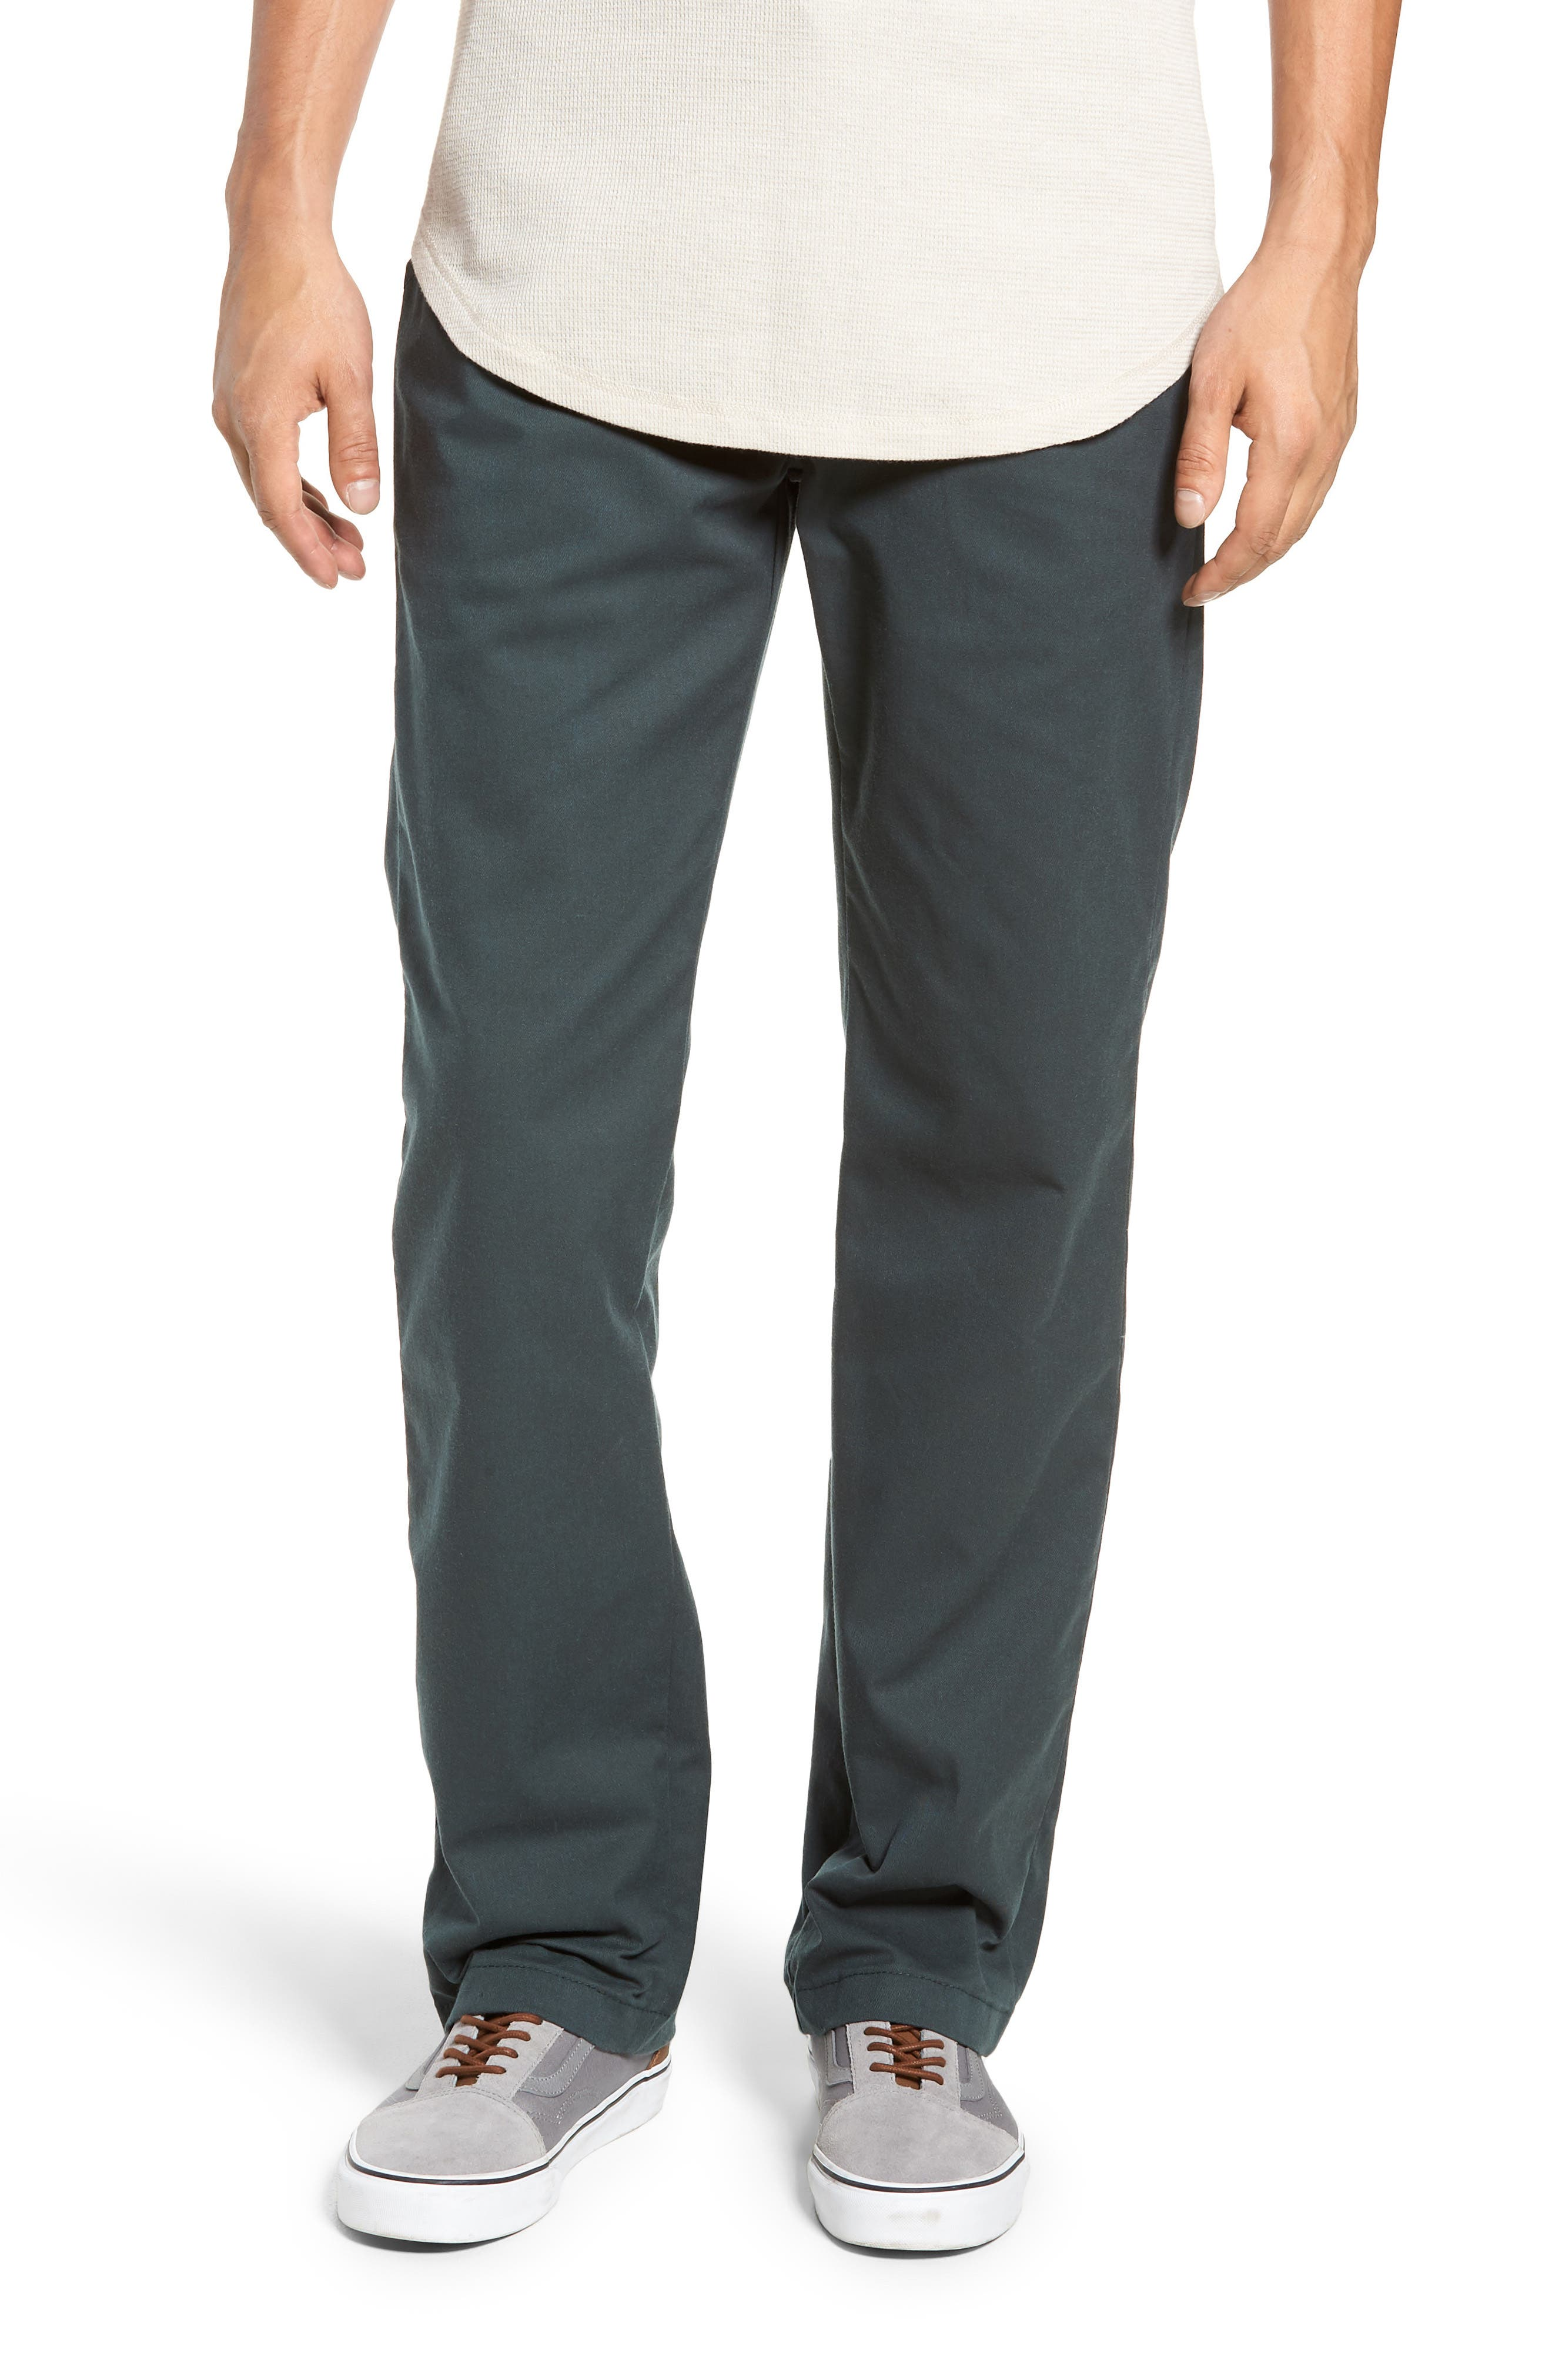 Authentic Chino Pro Pants,                         Main,                         color, 300